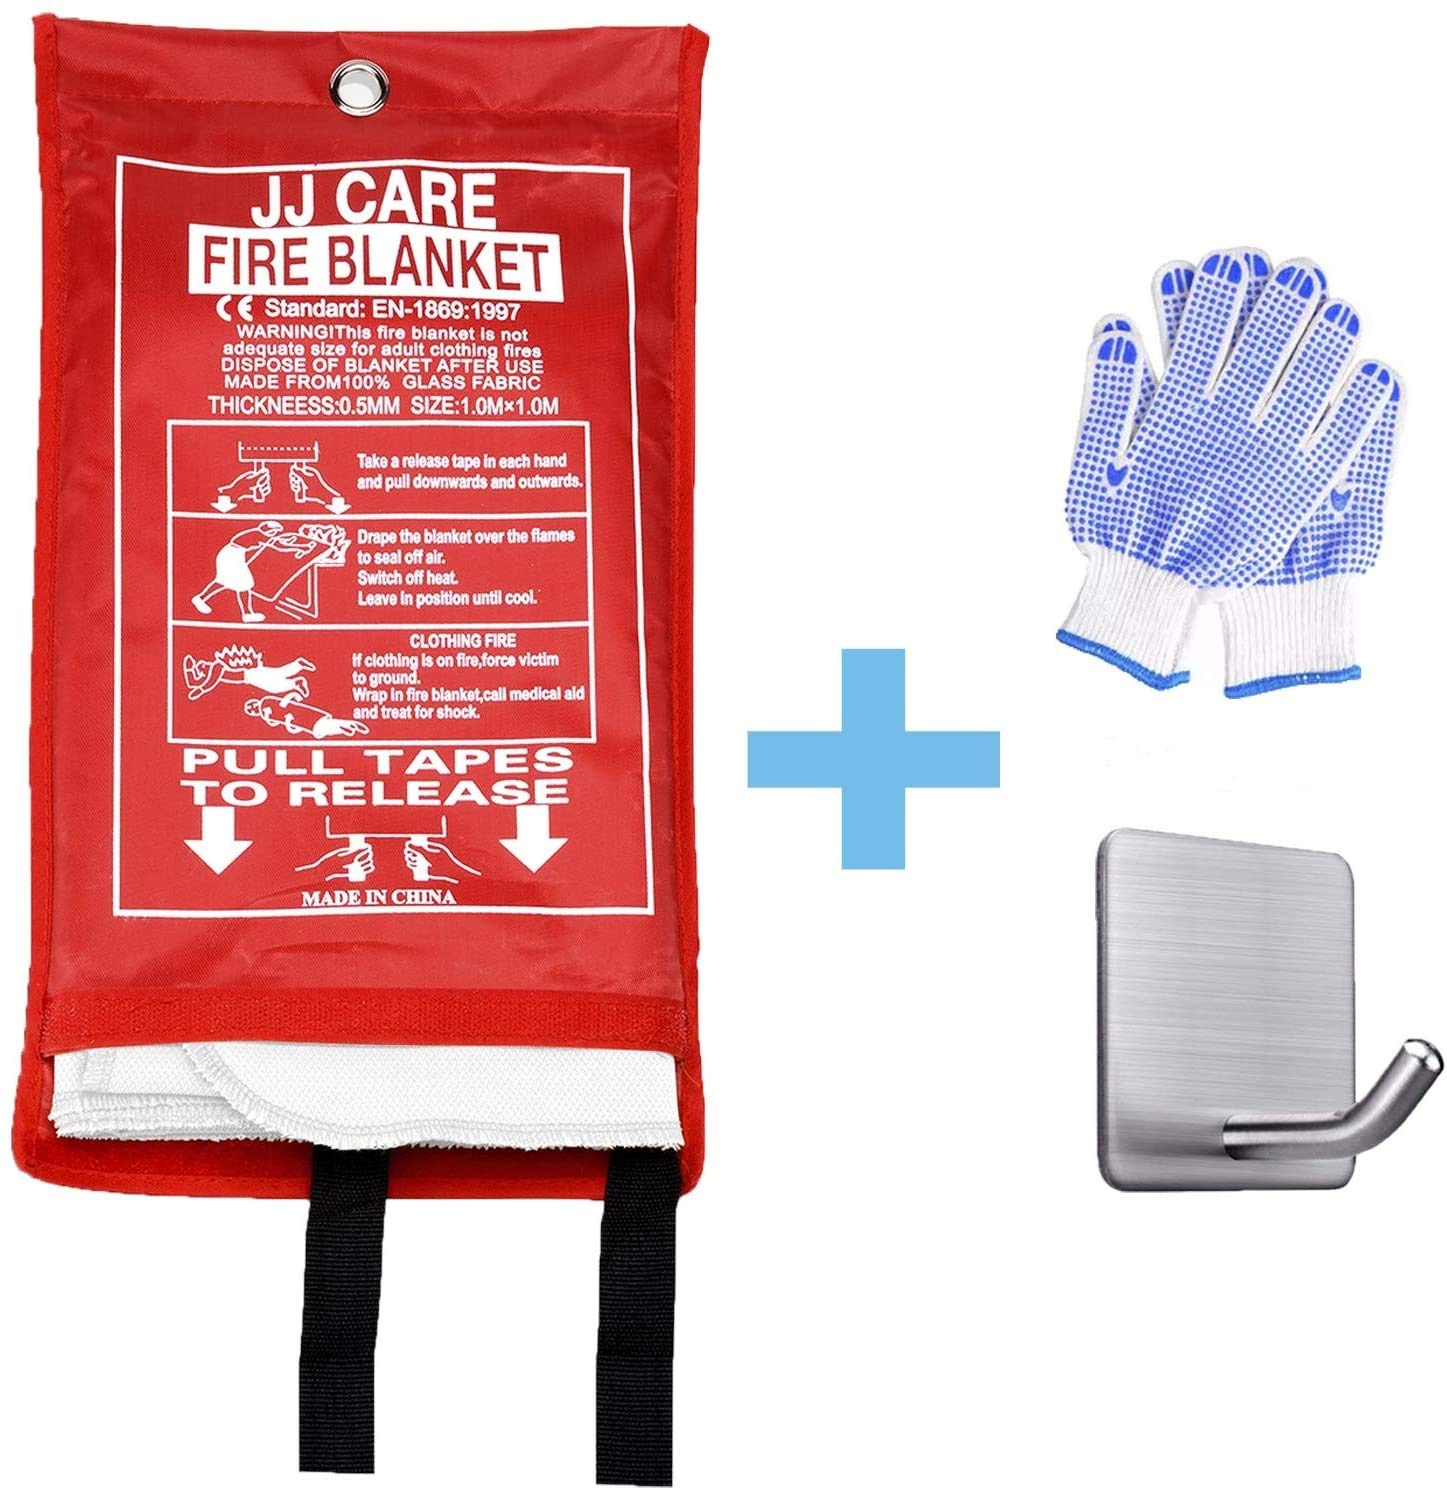 """JJ CARE Premium Fire Blanket (Extra Large) Fire Suppression Fire Fighting Blanket Fiberglass Cloth (79""""x79"""") Flame Retardant fire Safety Blanket Survival kit with Hook & Grip for Camping Kitchen & Car"""